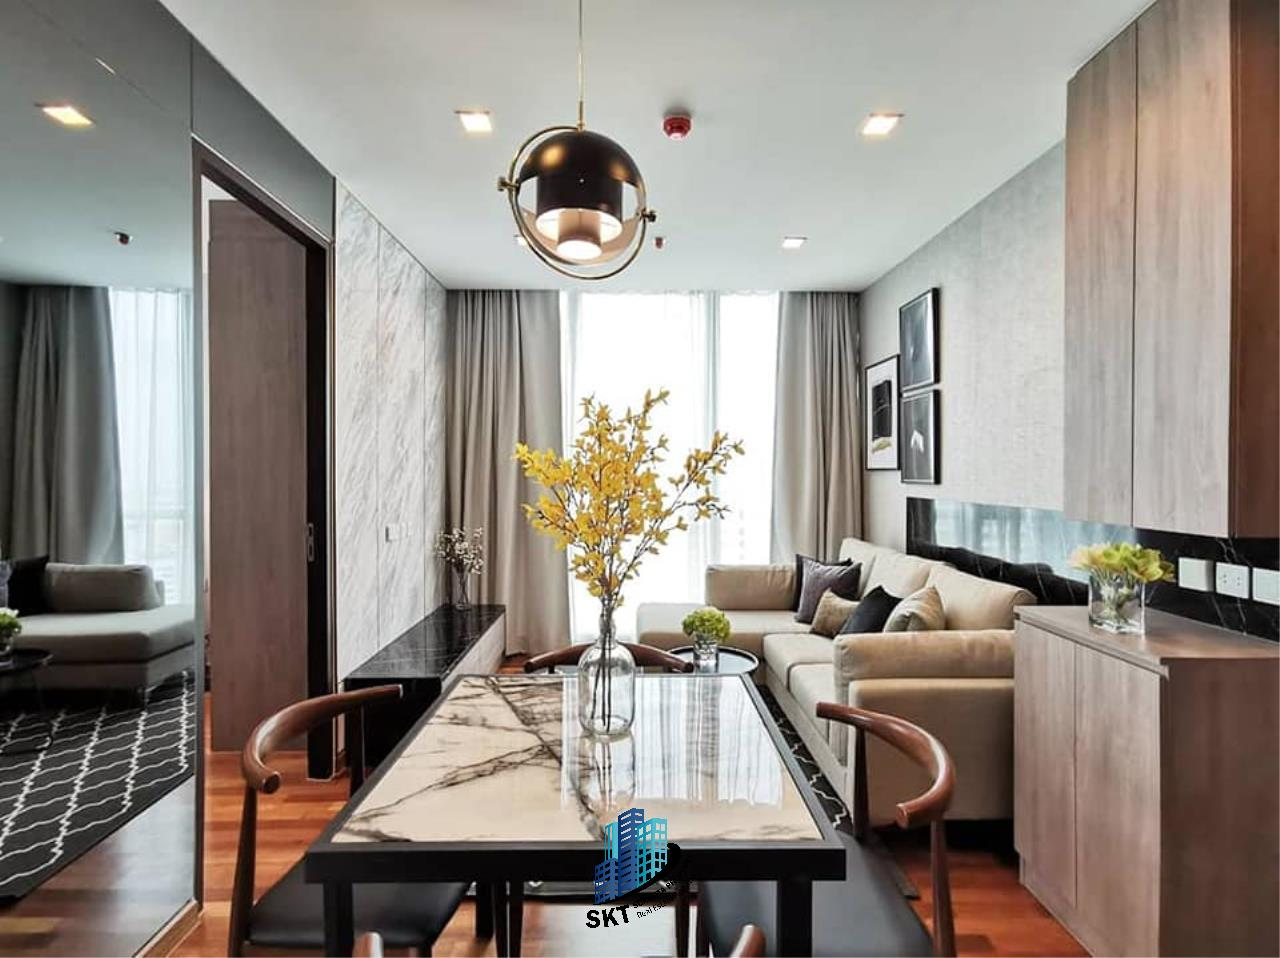 Sukritta Property Agency's WISH SIGNATURE MIDTOWN SIAM CONDO NEAR BTS RATCHATHEWI 9